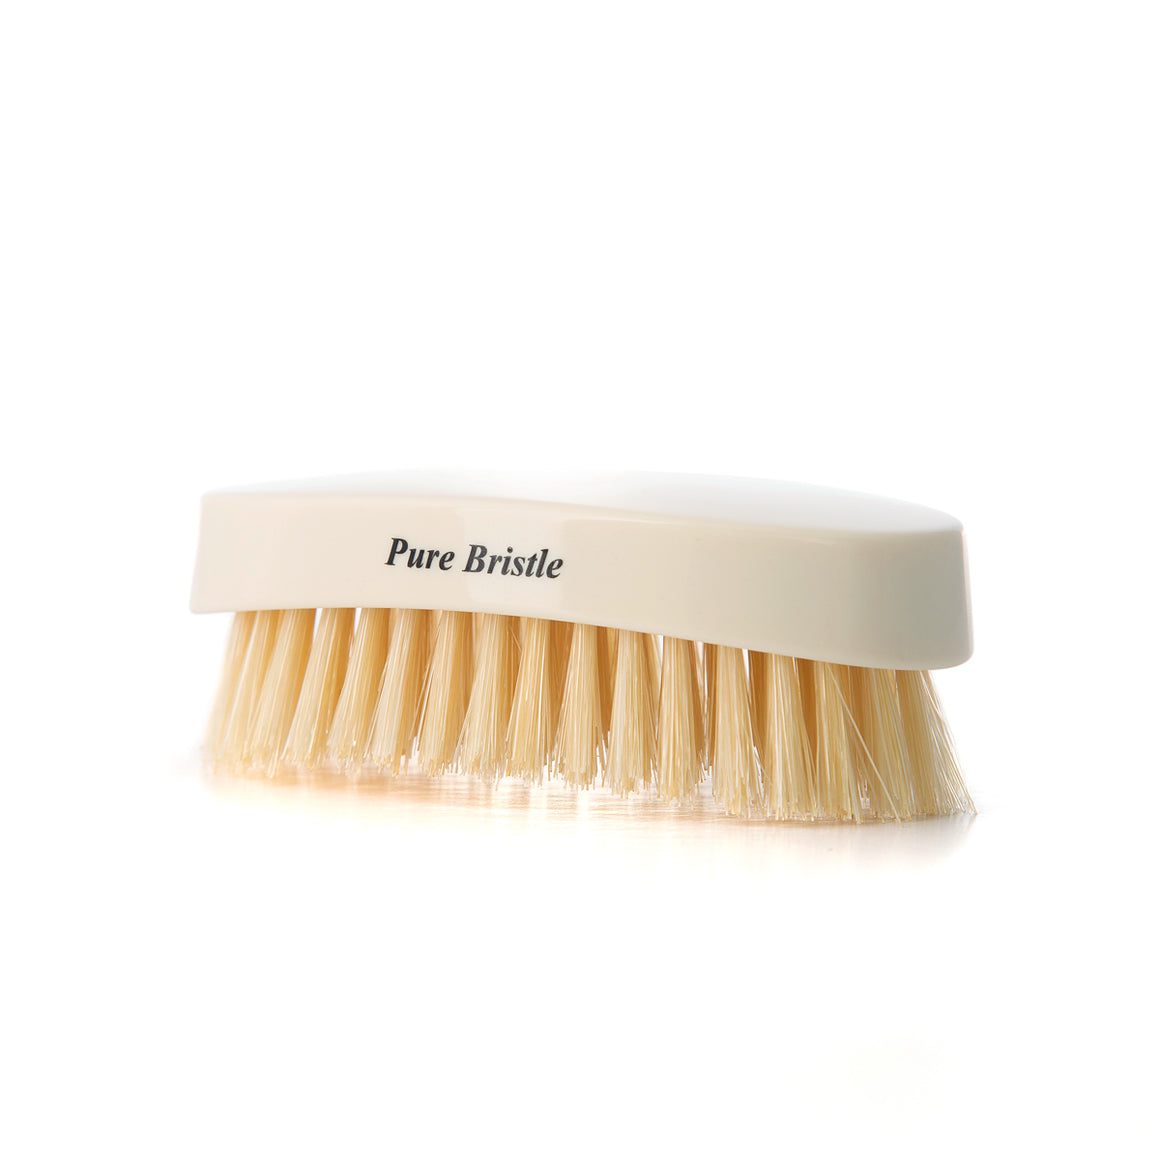 Travel Imitation Ivory Military Hairbrush